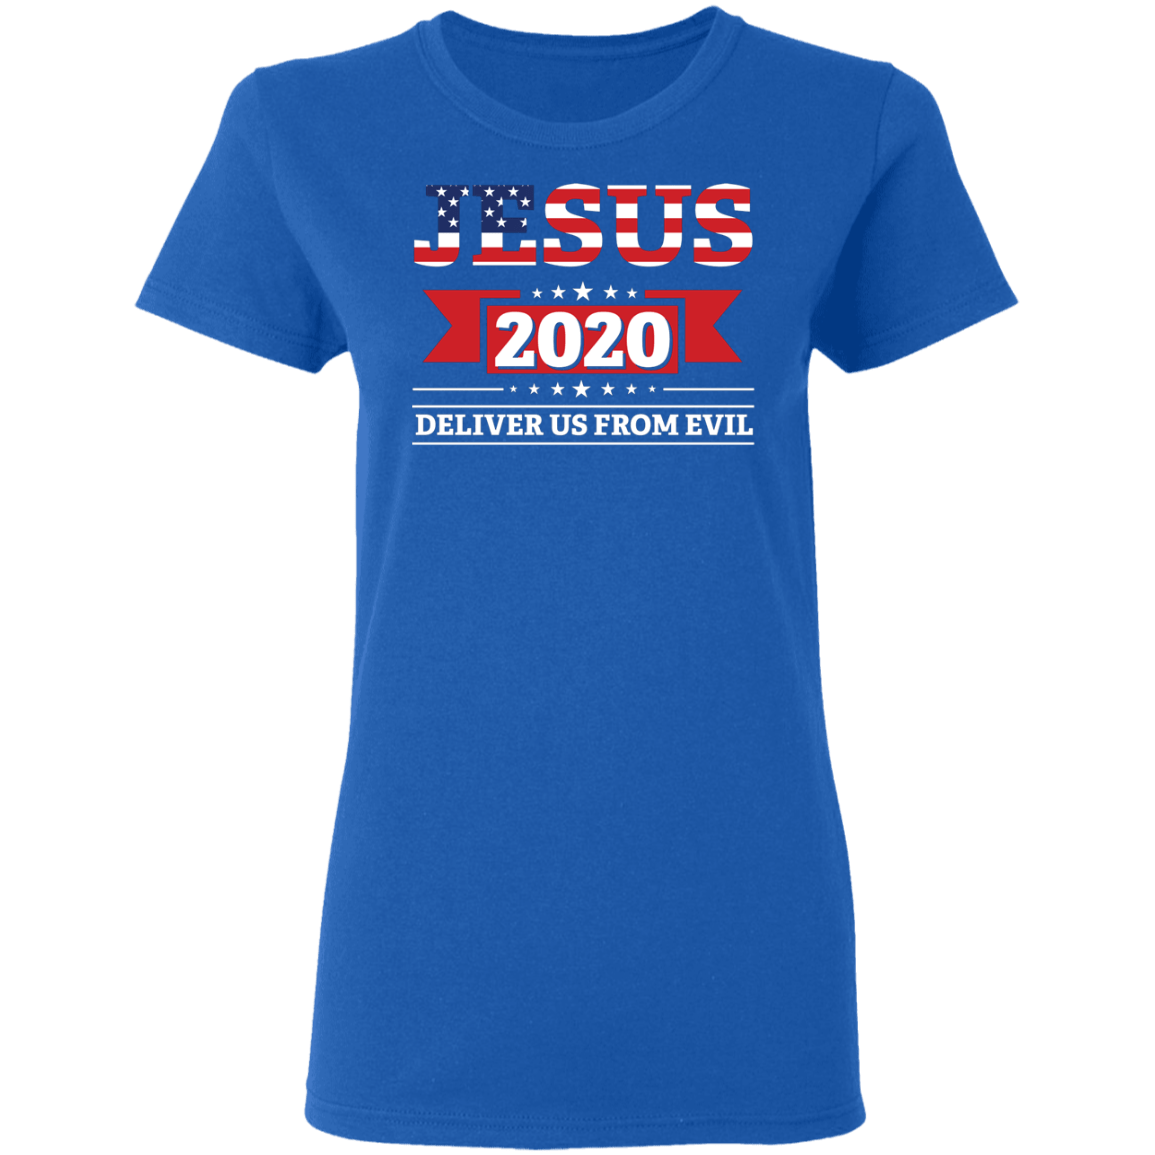 Jesus 2020 - Premium Tee - My Christian Shop